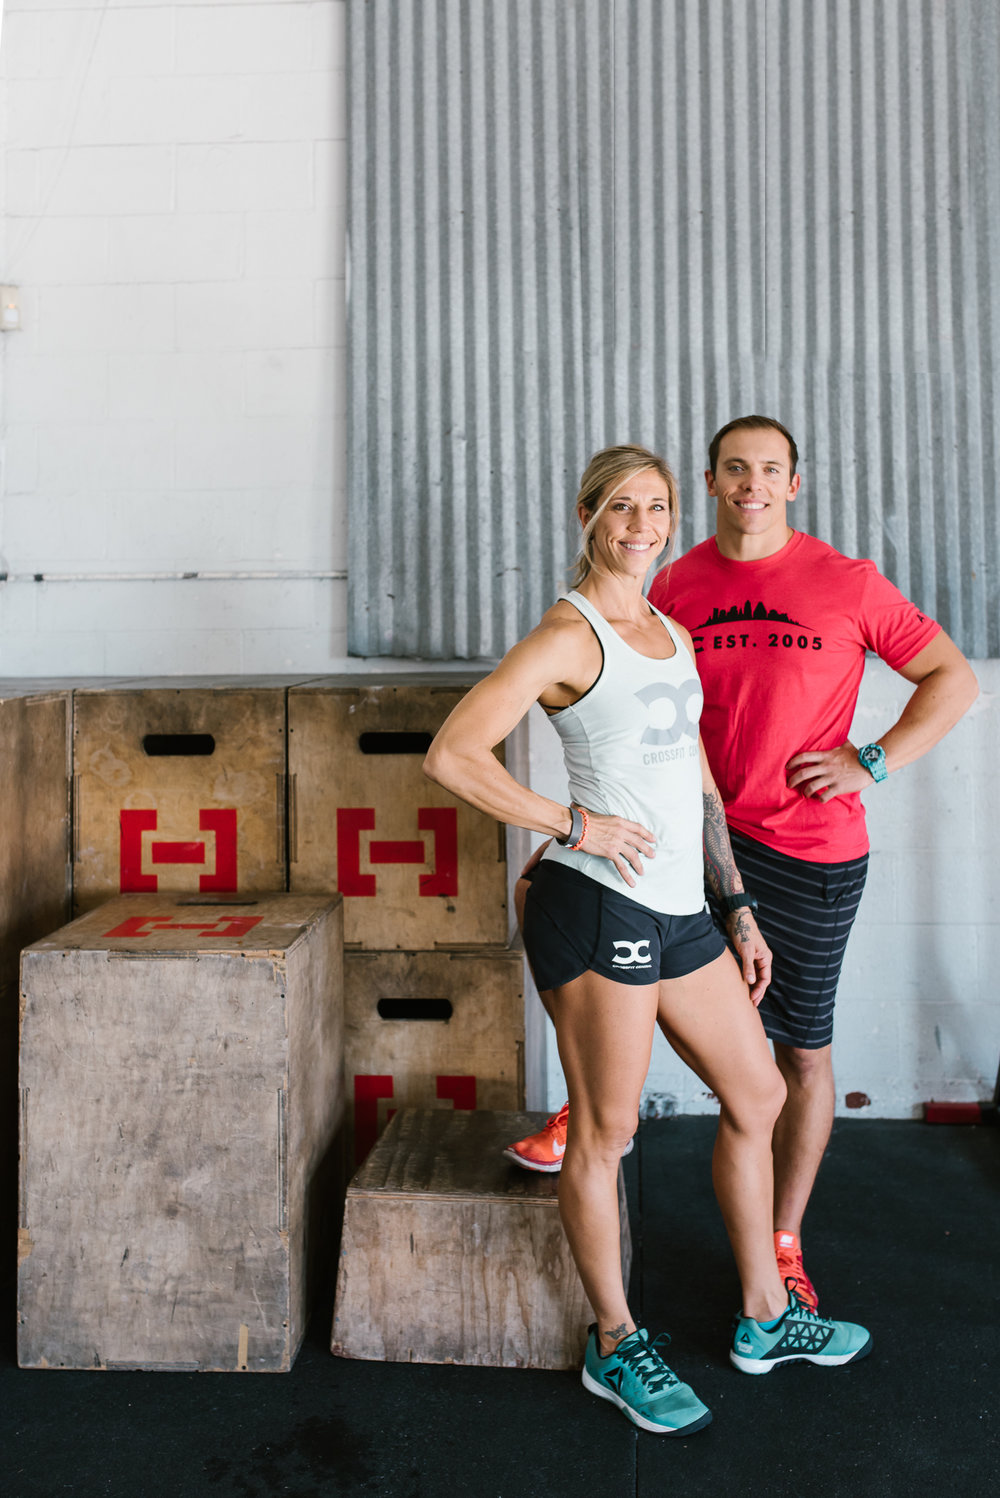 Austin and Round Rock Commercial Photography - Emily Ingalls Photography - Sports and Fitness Photography - CrossFit Central_CrossFit and Weight lifting Photography.jpg